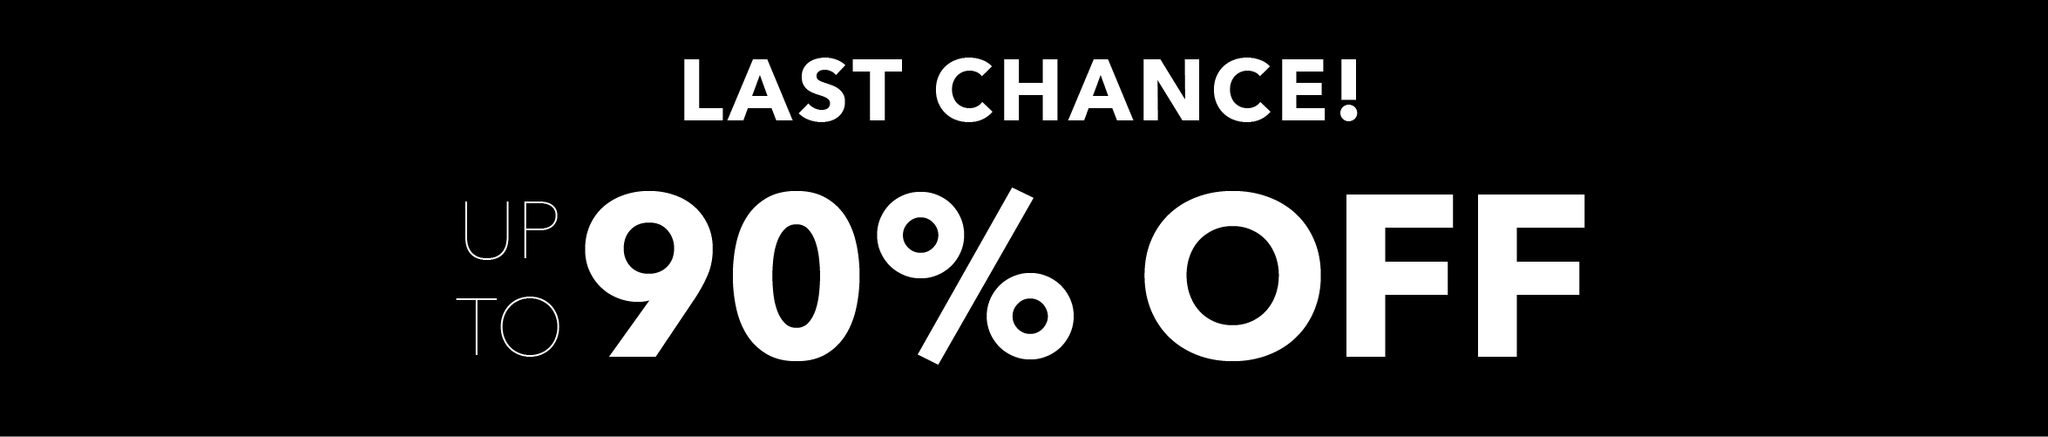 LAST CHANCE up to 90% off